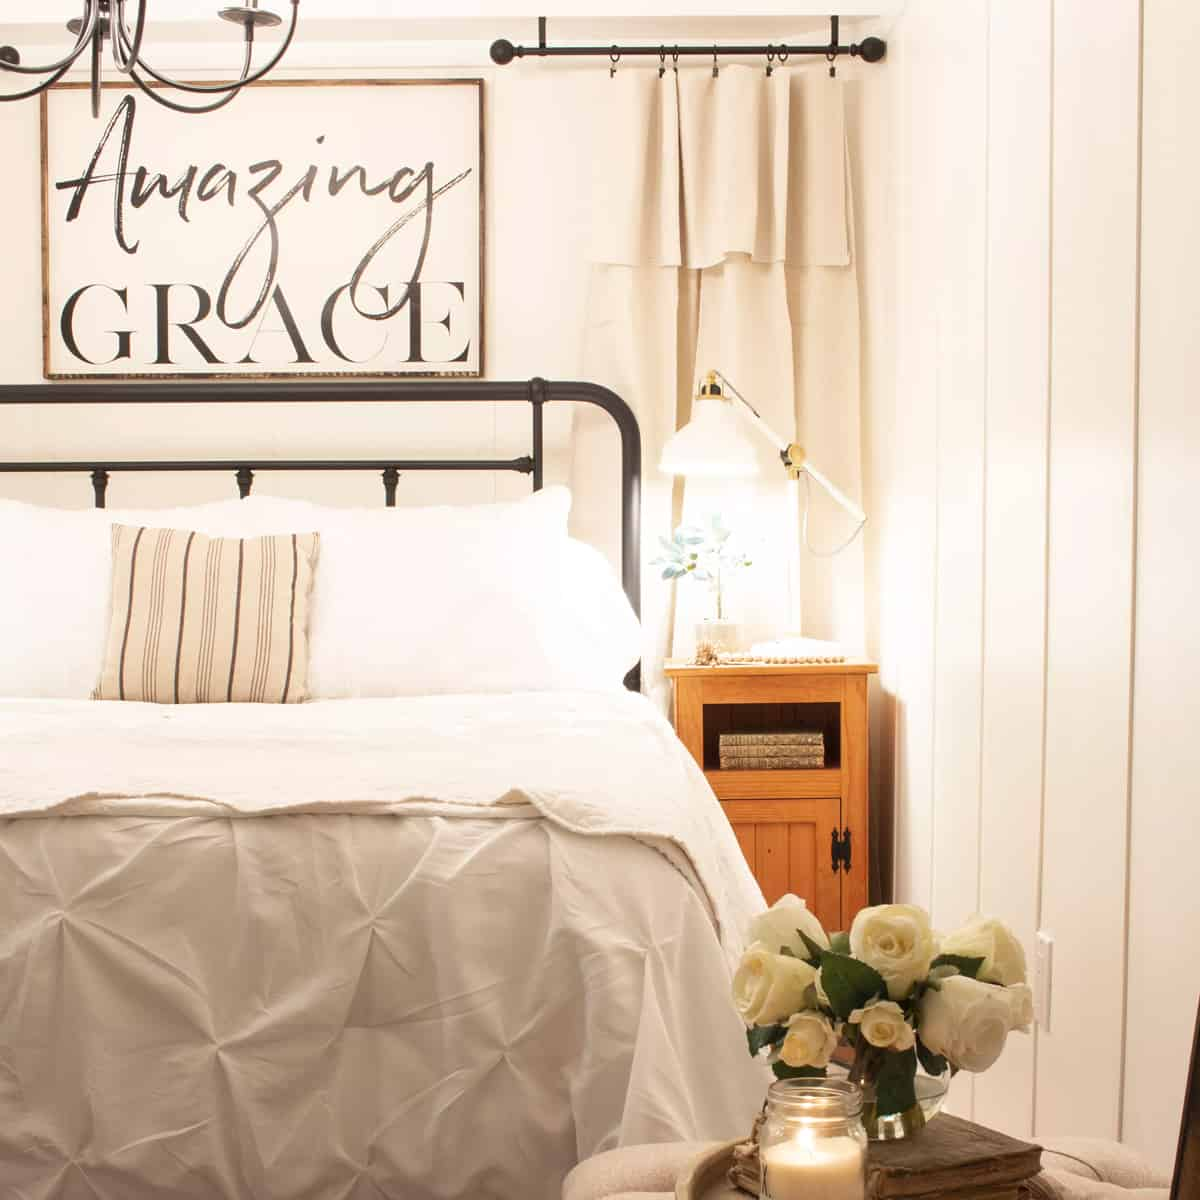 basement guest room with white board and batten walls, white bedding and amazing grace script sign over iron bed frame